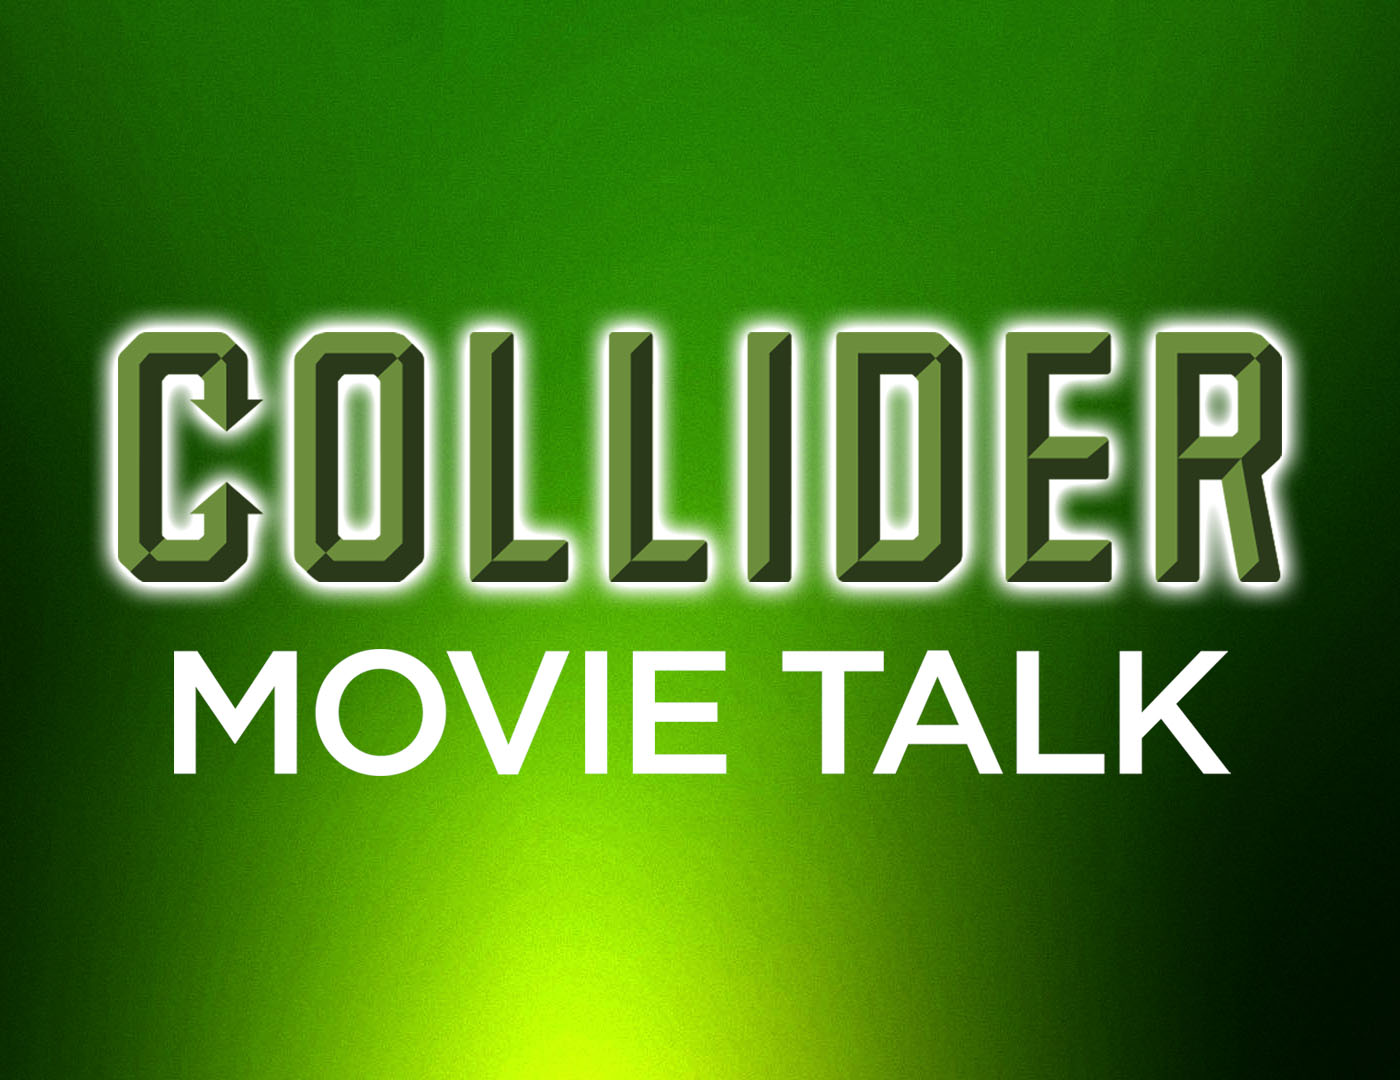 Collider Movie Talk - First Doctor Strange Images, Star Wars Smashes New Records